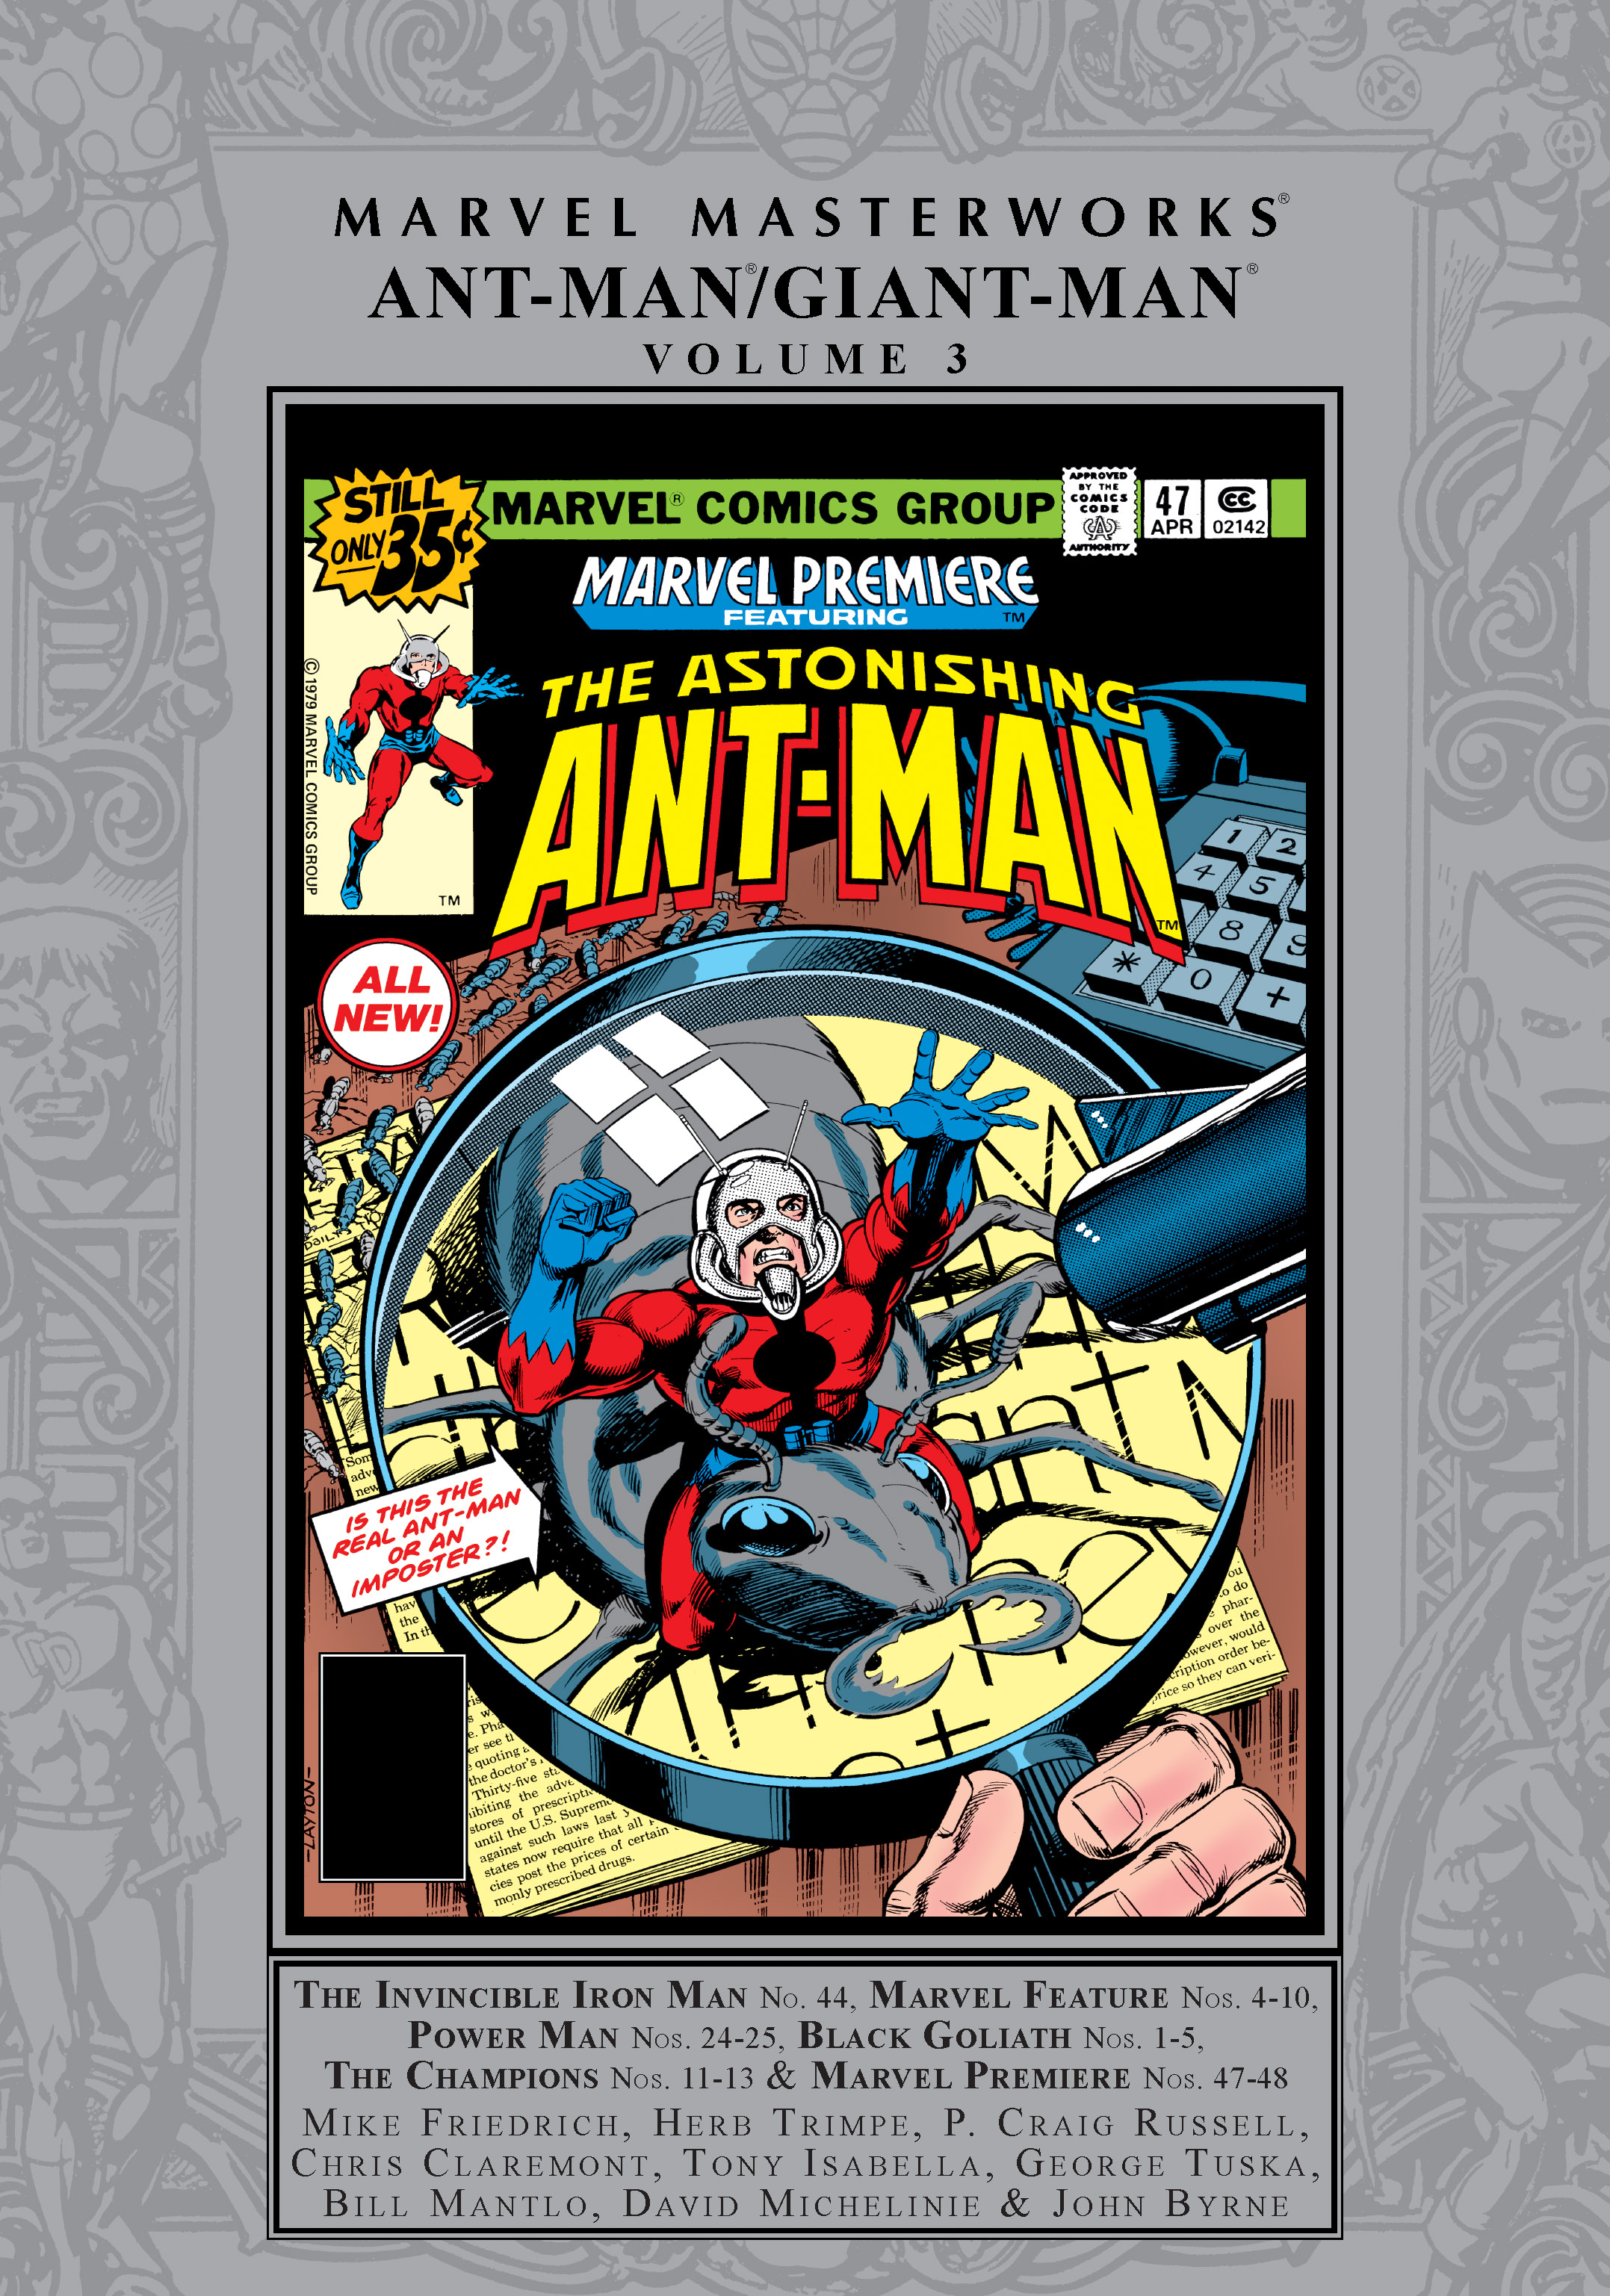 Marvel Masterworks: Ant-Man/Giant-Man Vol. 3 (Hardcover)